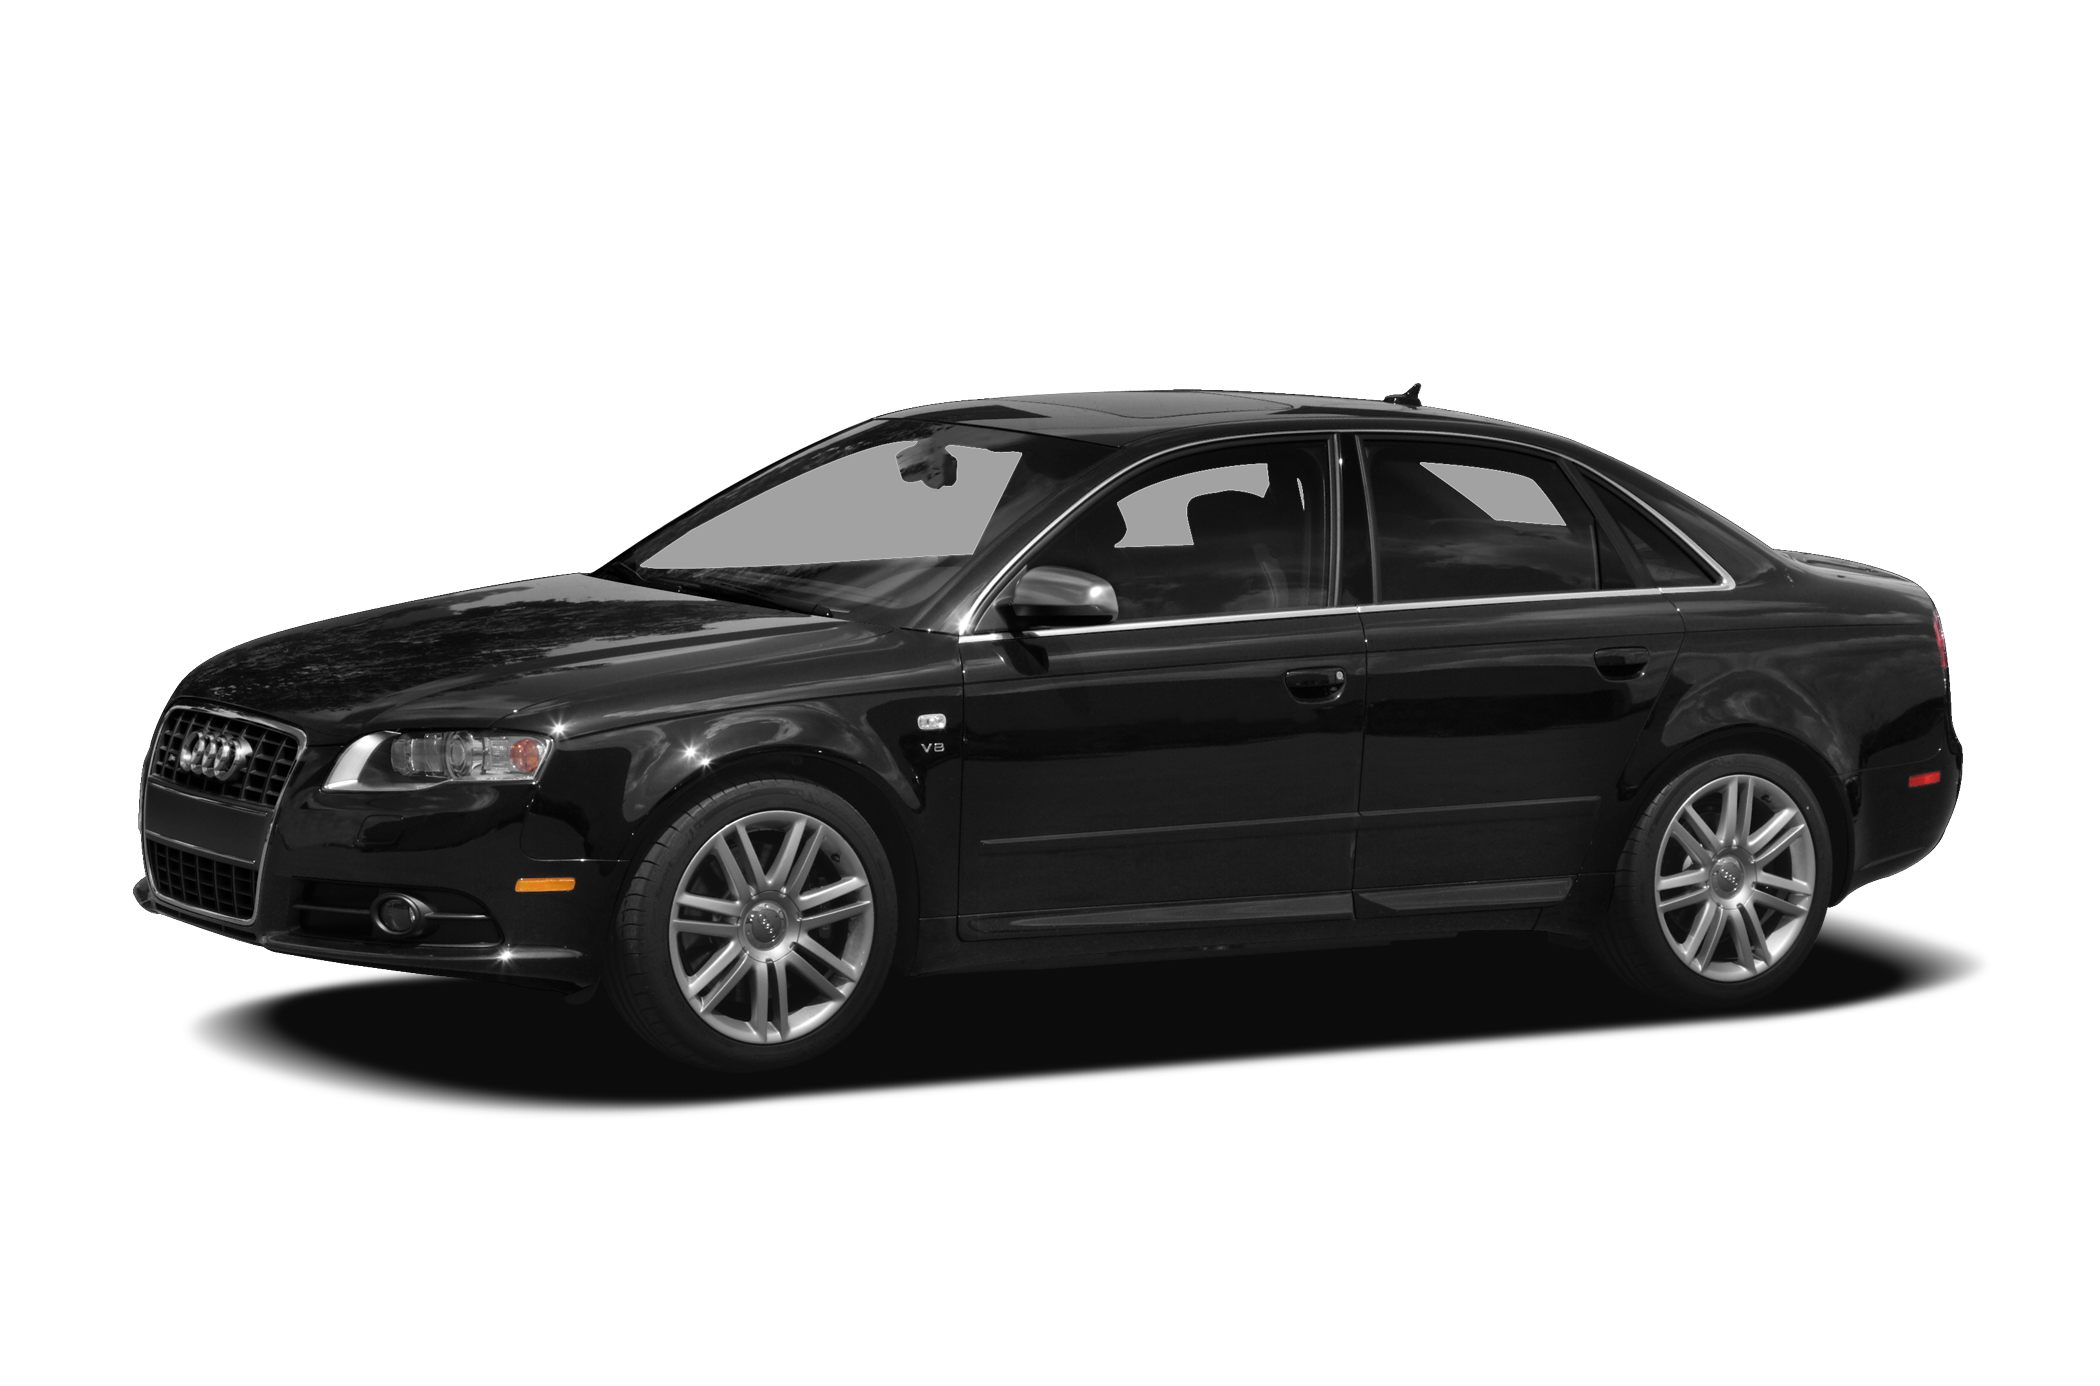 2007 Audi S4 42 quattro This particular 20075 S4 is absolutely pristine Gorgeous inside and out